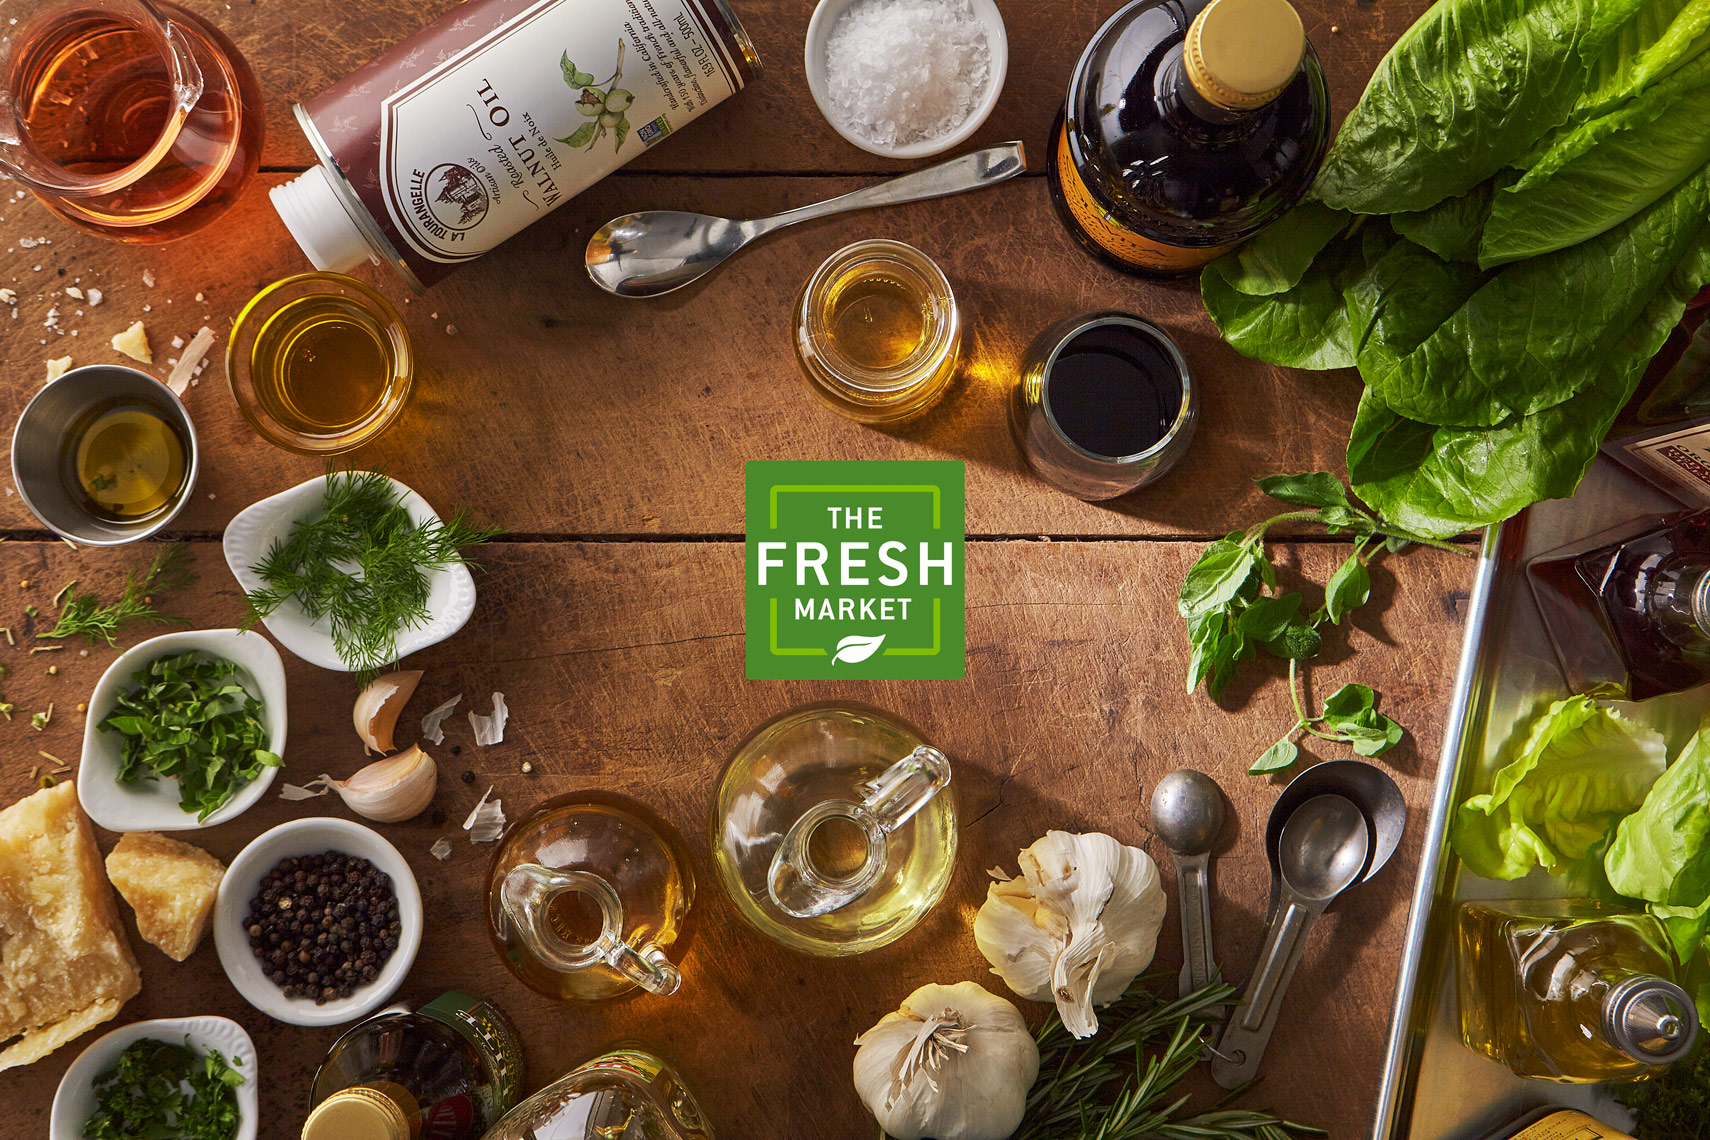 FRESH-MARKET-OILS-VINEGAR-HERBS